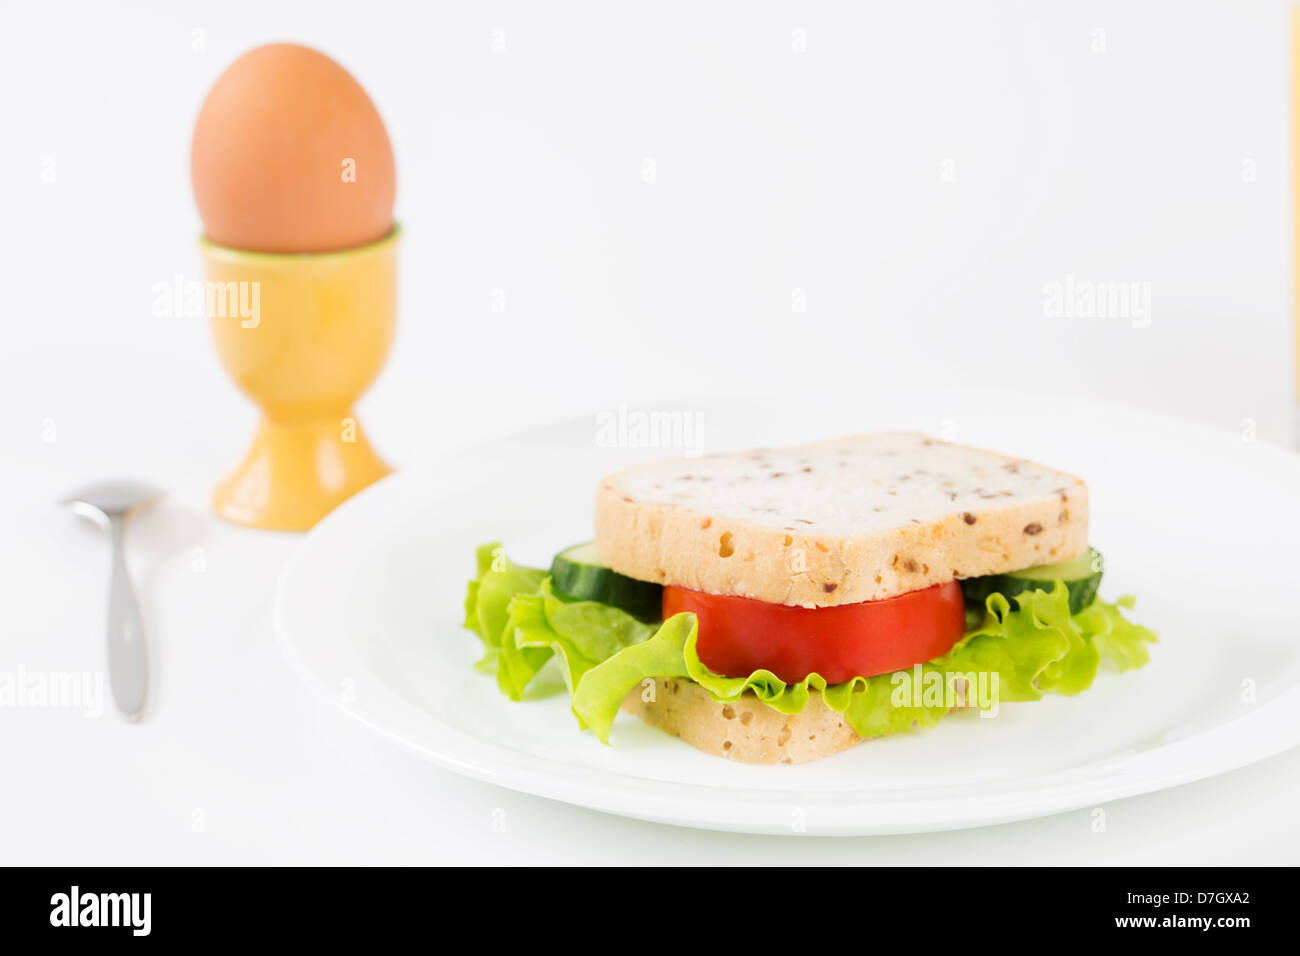 Lovely sandwich with vegetables will satisfy hungry stomach - Stock Image